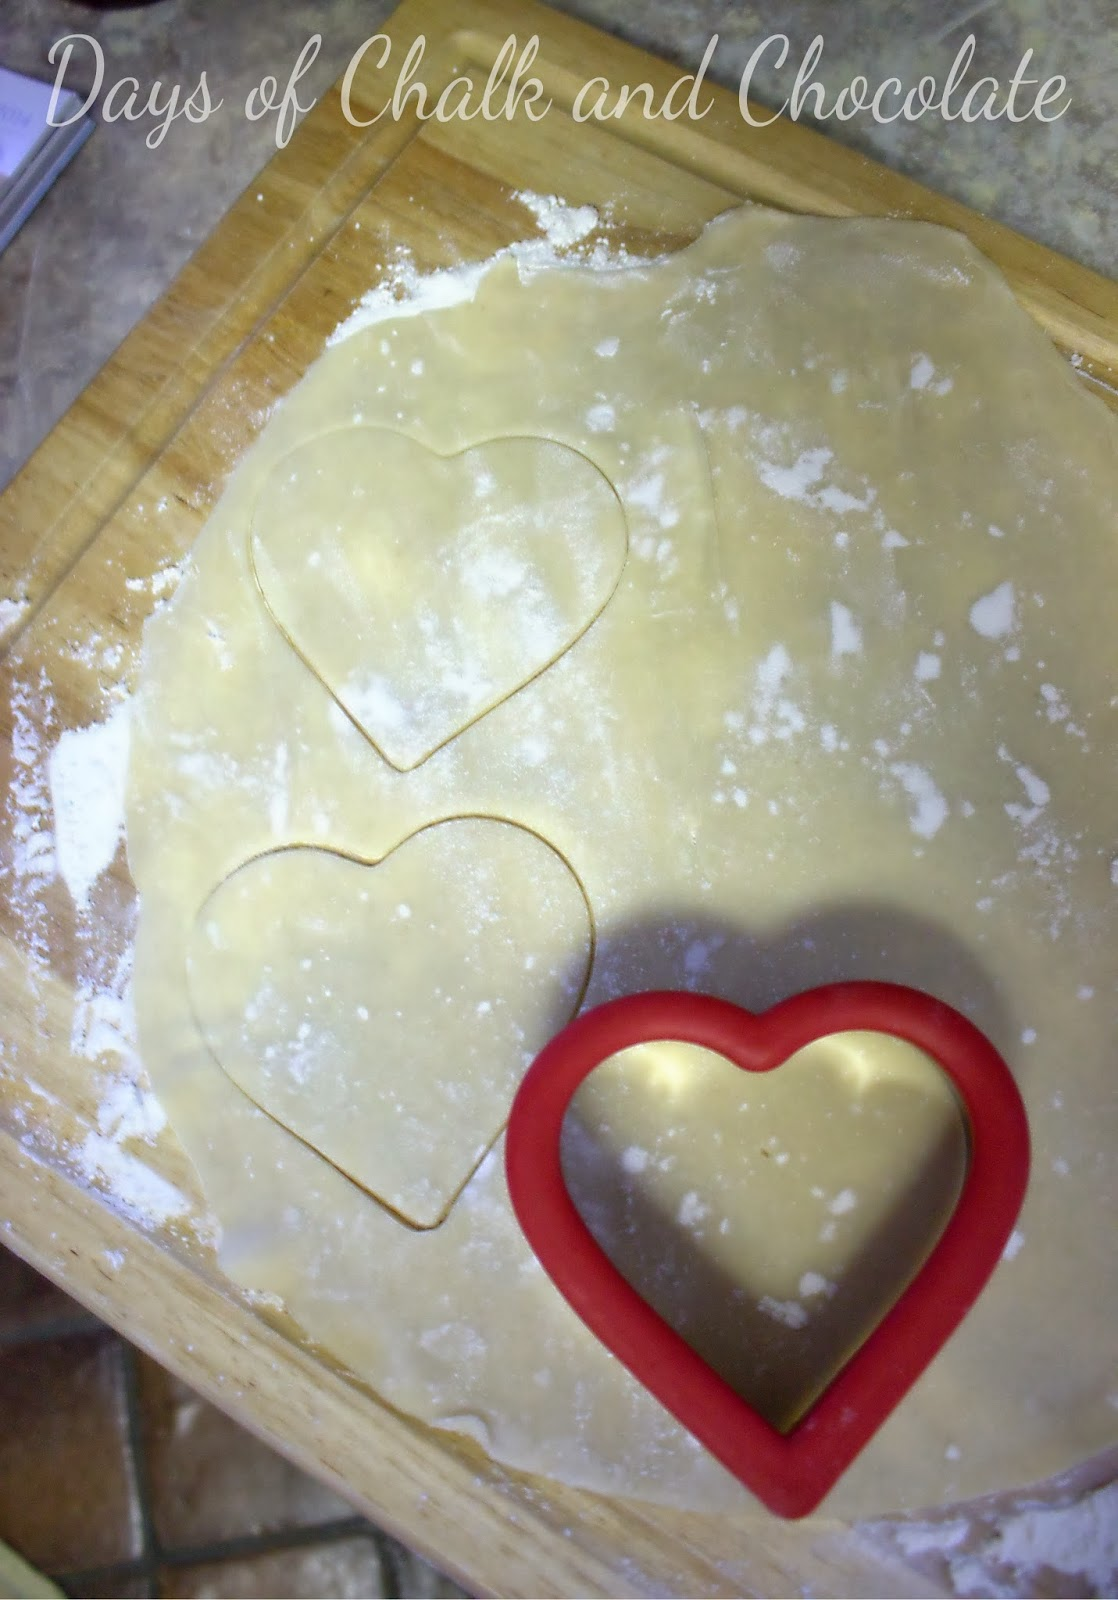 Using a large cookie cutter, cut out an even amount of dough shapes ...